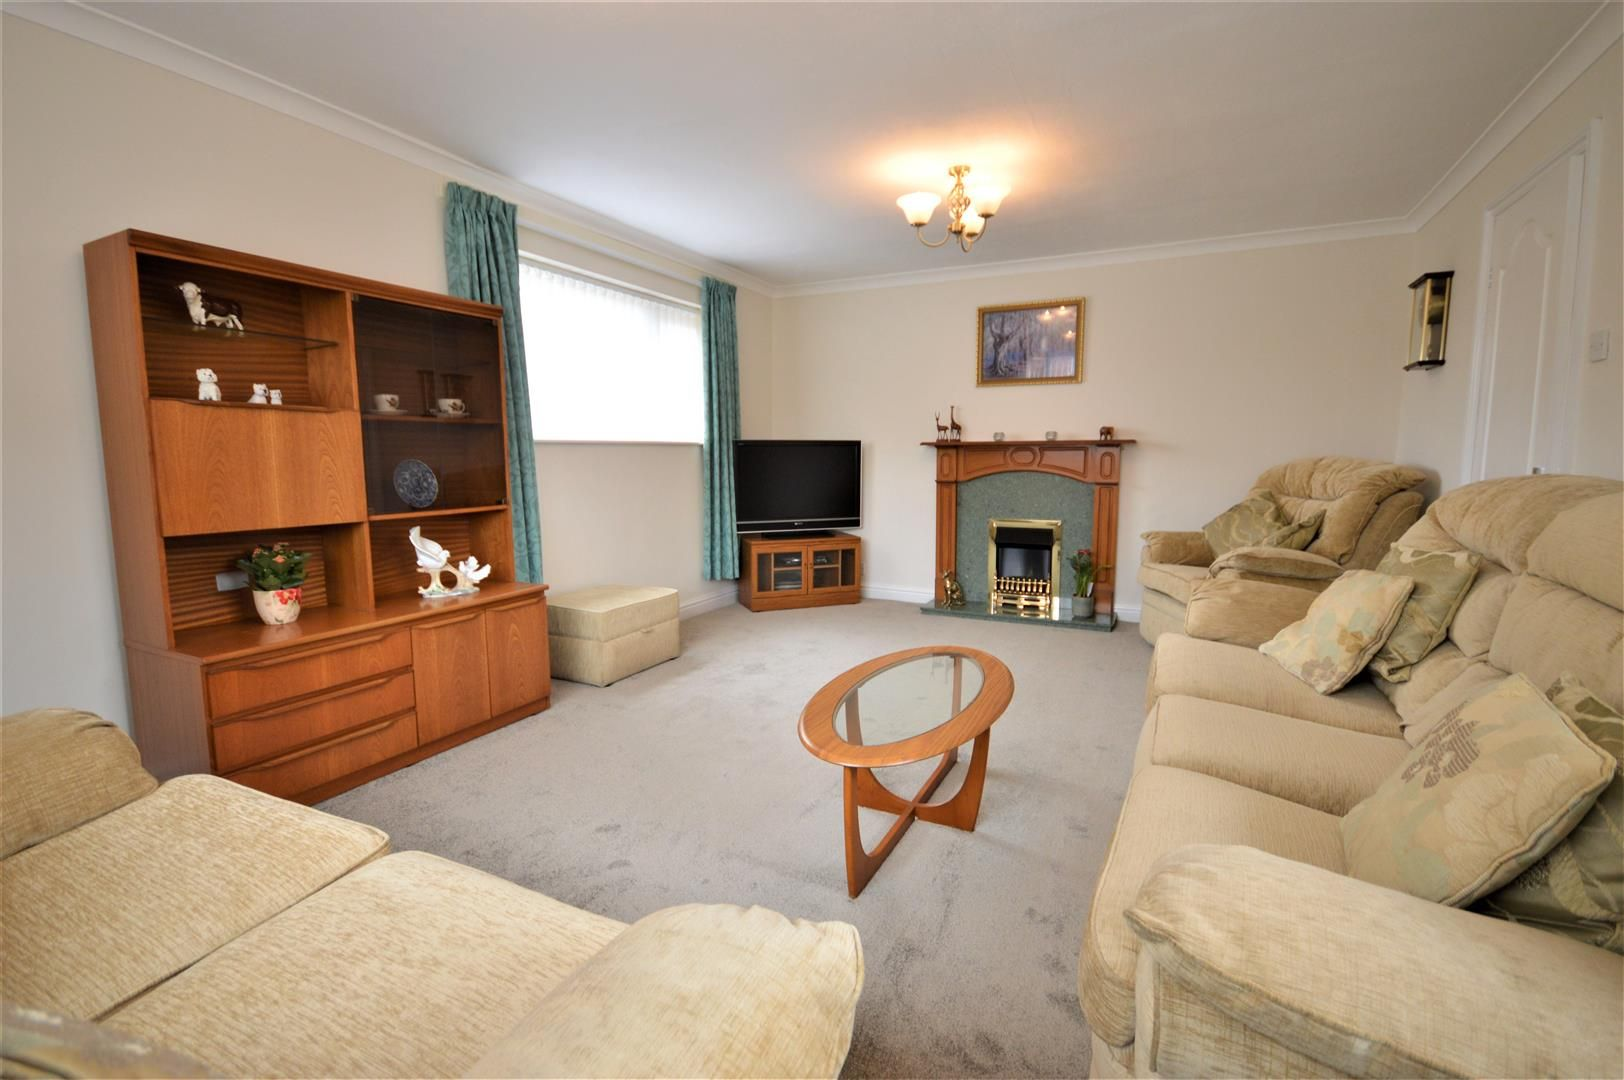 2 bed semi-detached-bungalow for sale in Leominster  - Property Image 2